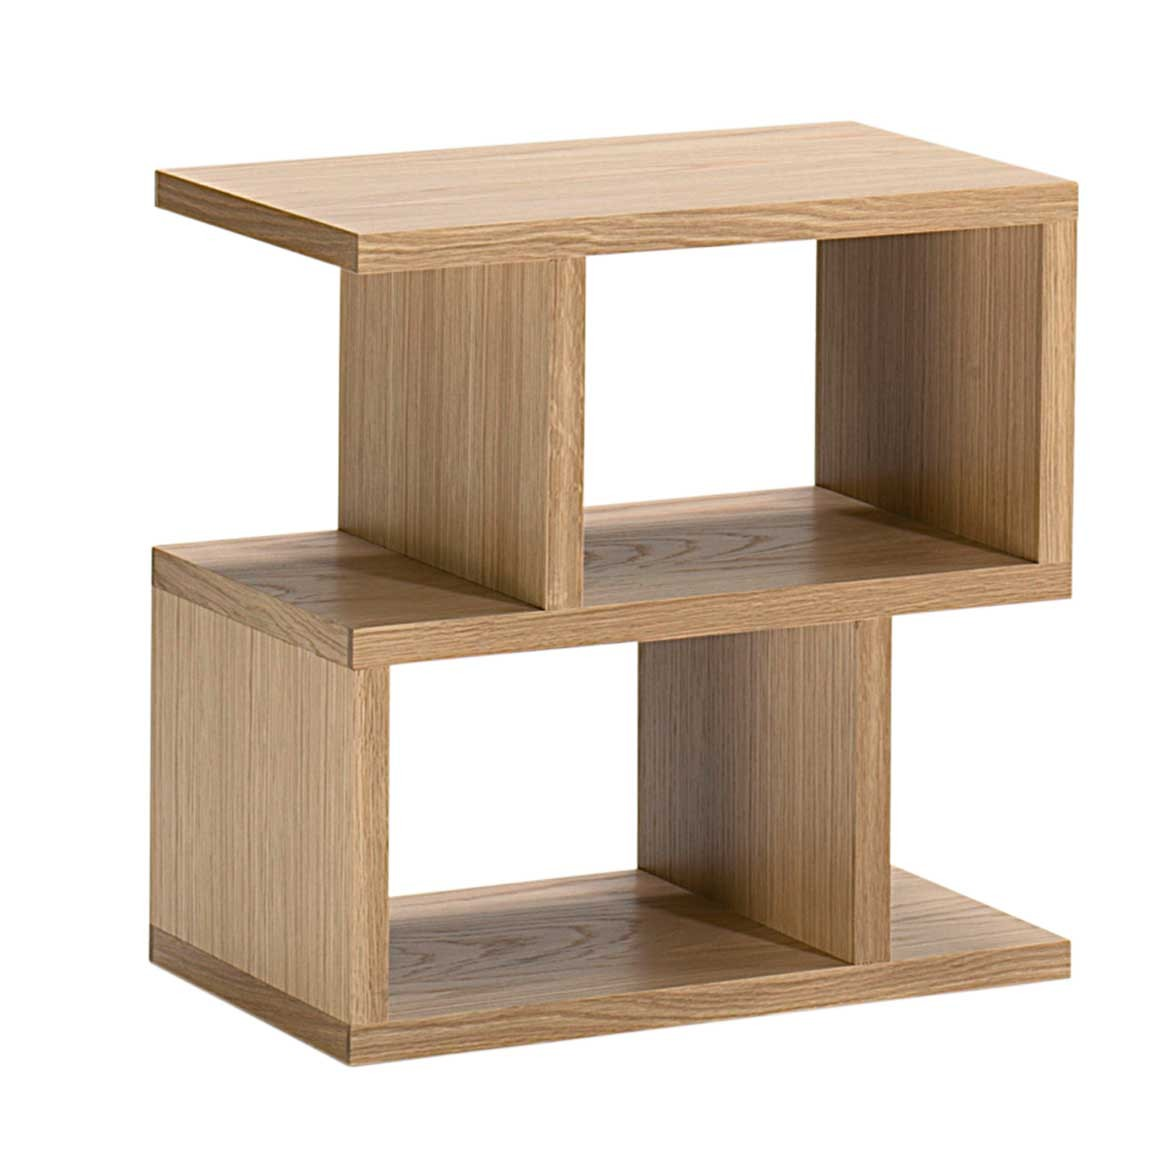 Balance Side Table Hpd256 Al Habib Panel Doors